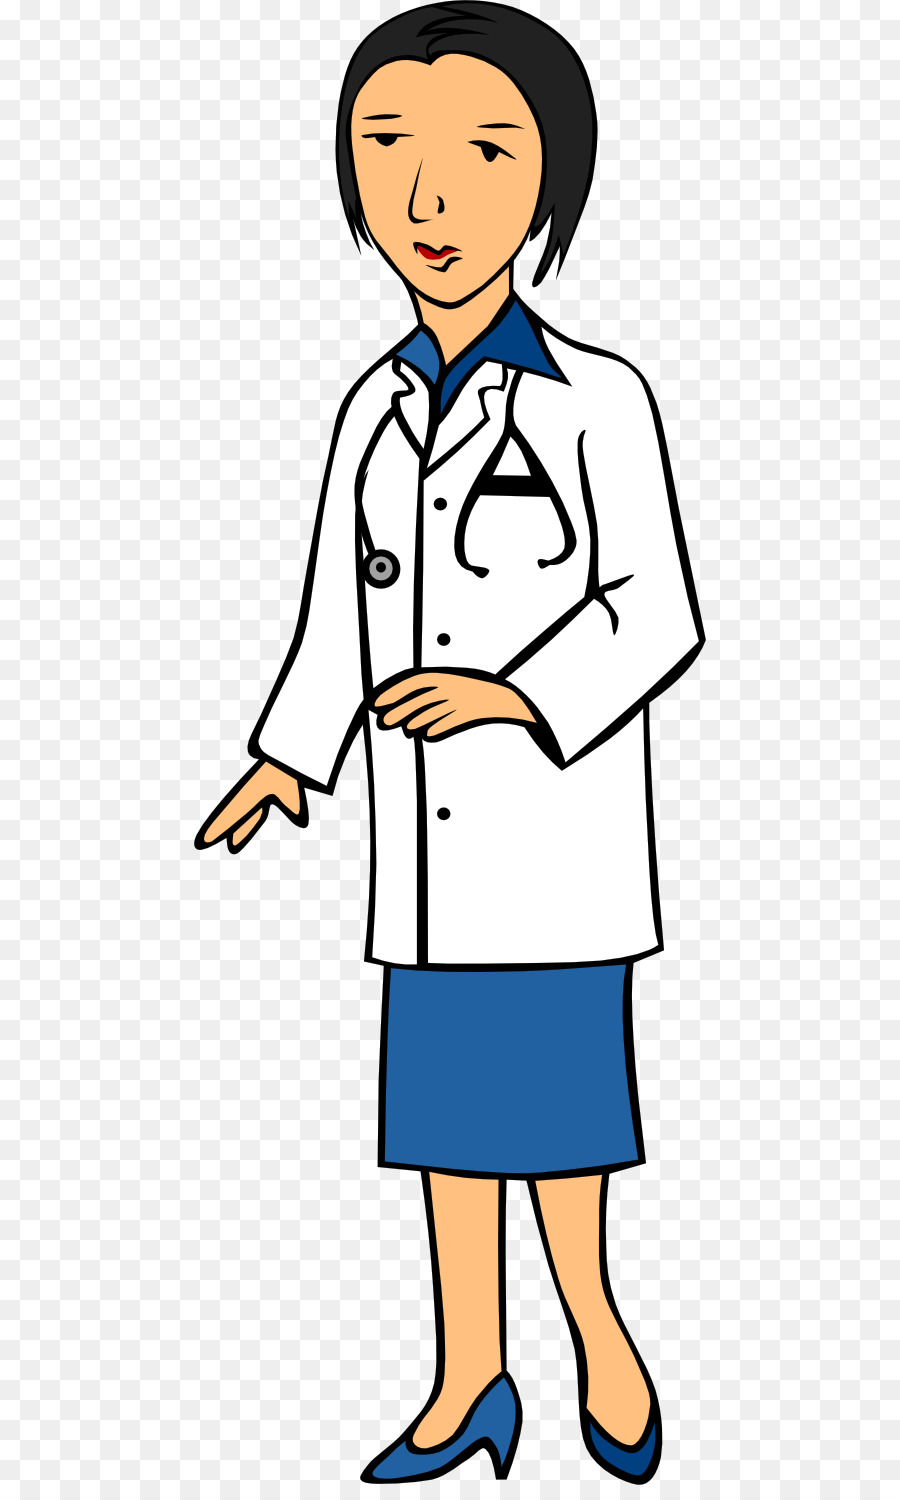 physician woman female clip art free doctor clipart png download rh kisspng com free doctor who clipart doctor clipart black and white